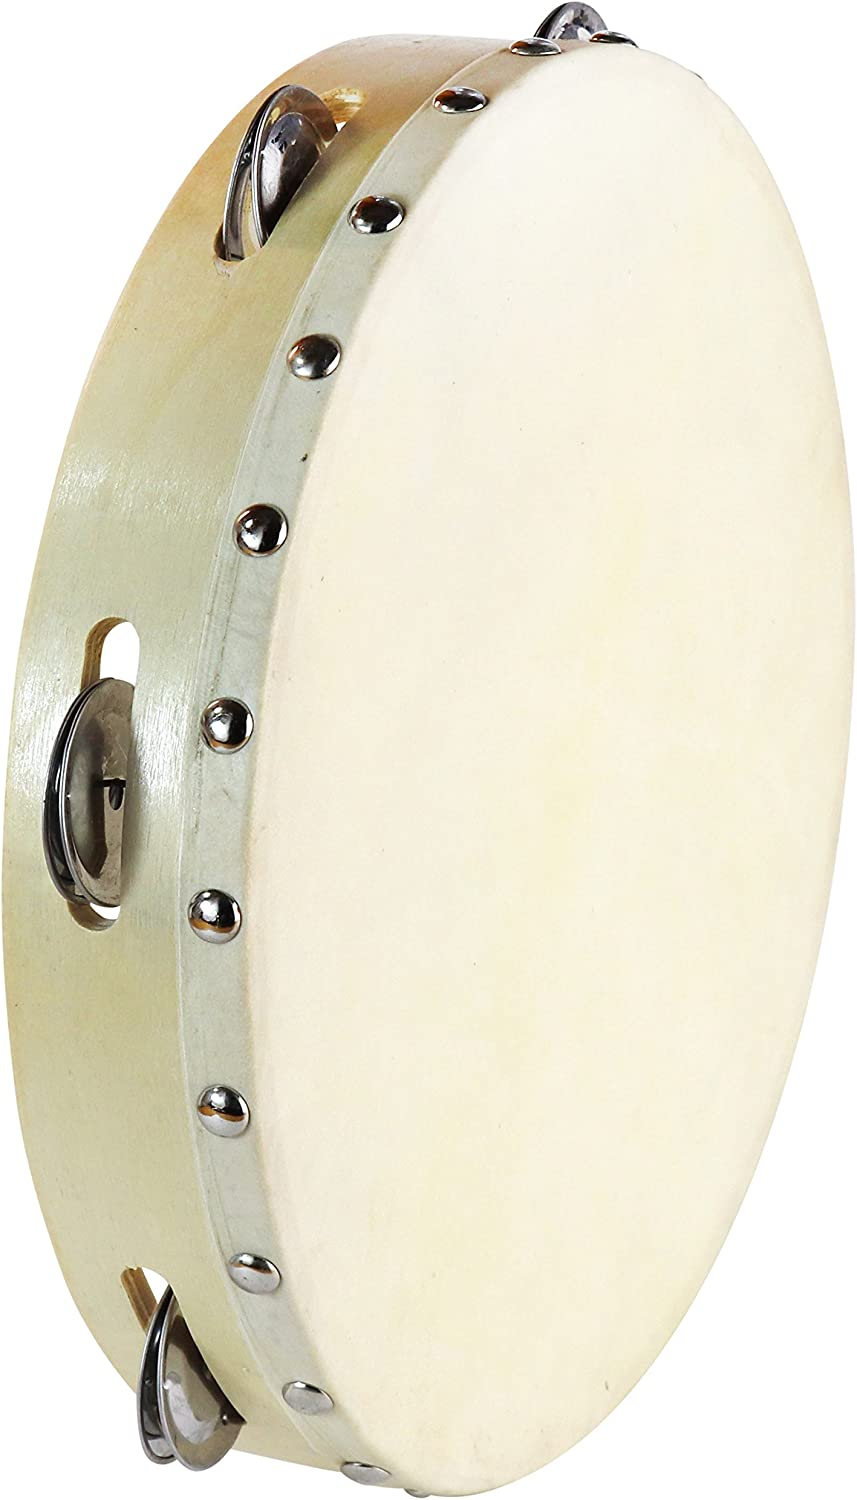 Tambourine 10 inch for Adults Handheld Tambourine Drum with Metal Jingles for Church